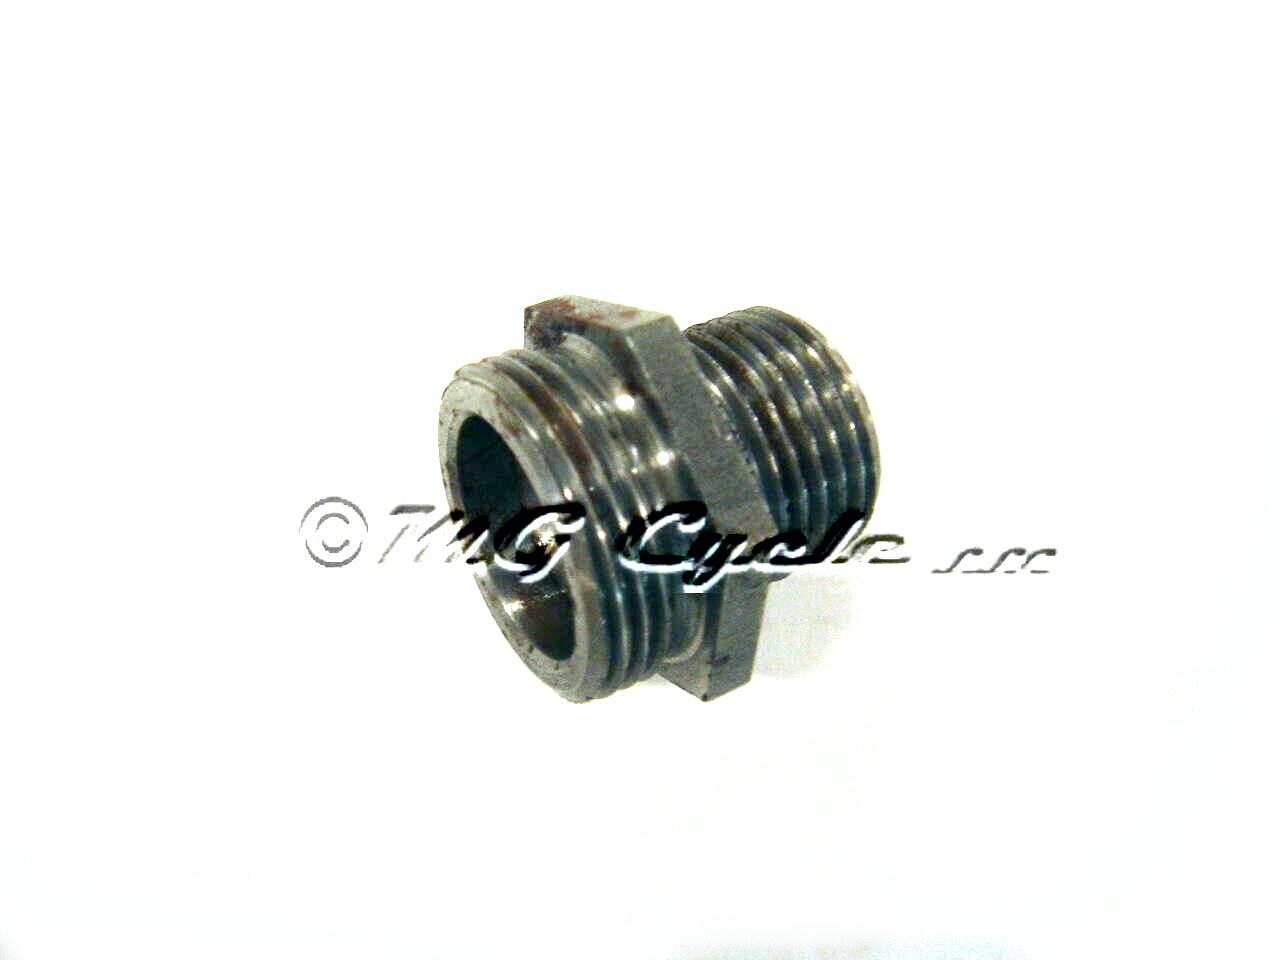 oil filter adapter, for larger oil filter 30153000 or HF551